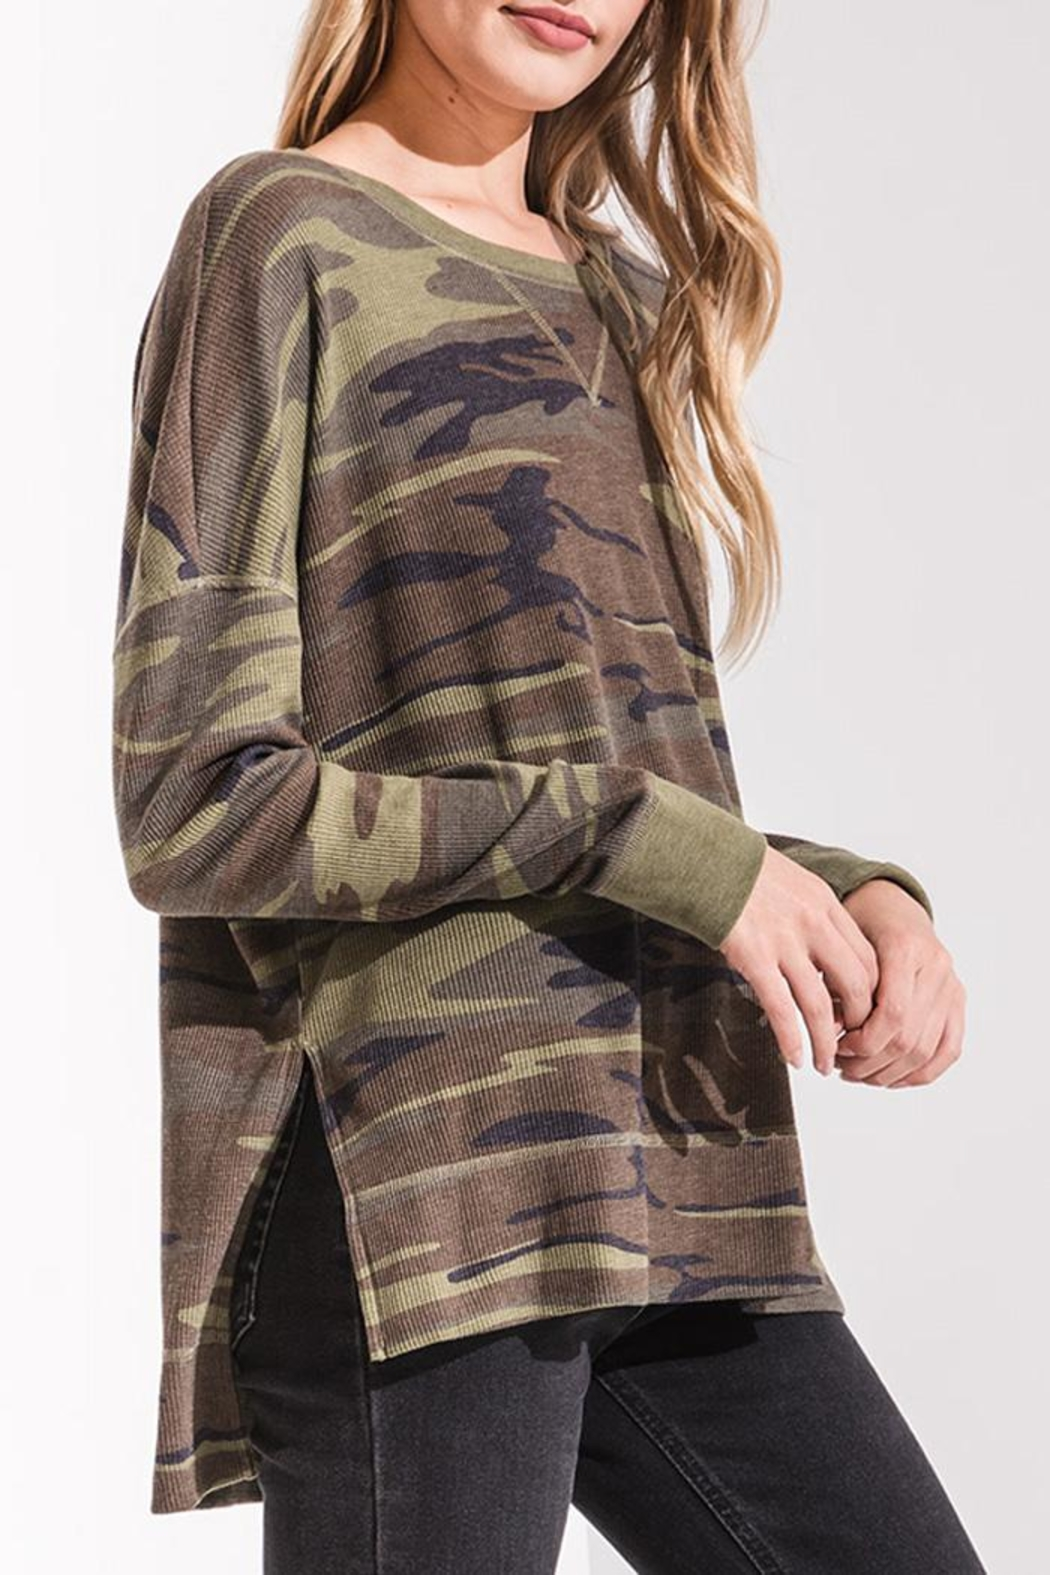 z supply Camo Thermal Top - Front Full Image